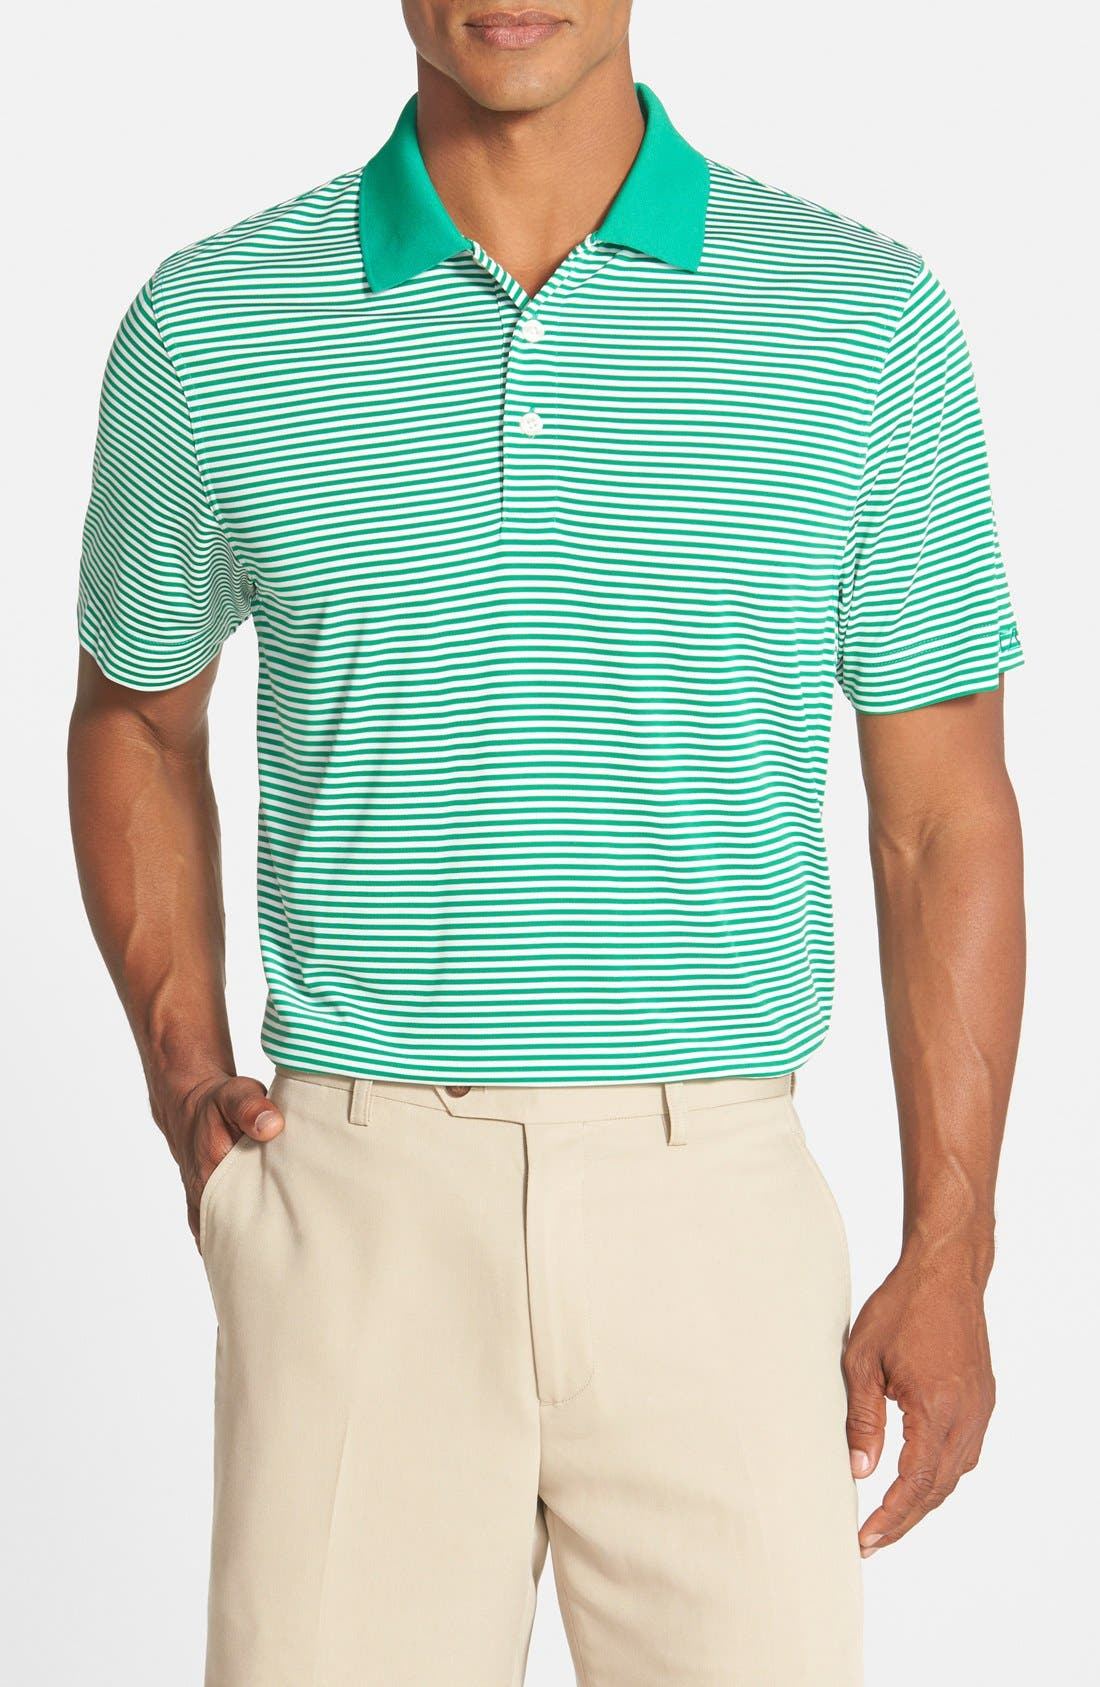 CUTTER & BUCK 'Trevor' DryTec Moisture Wicking Golf